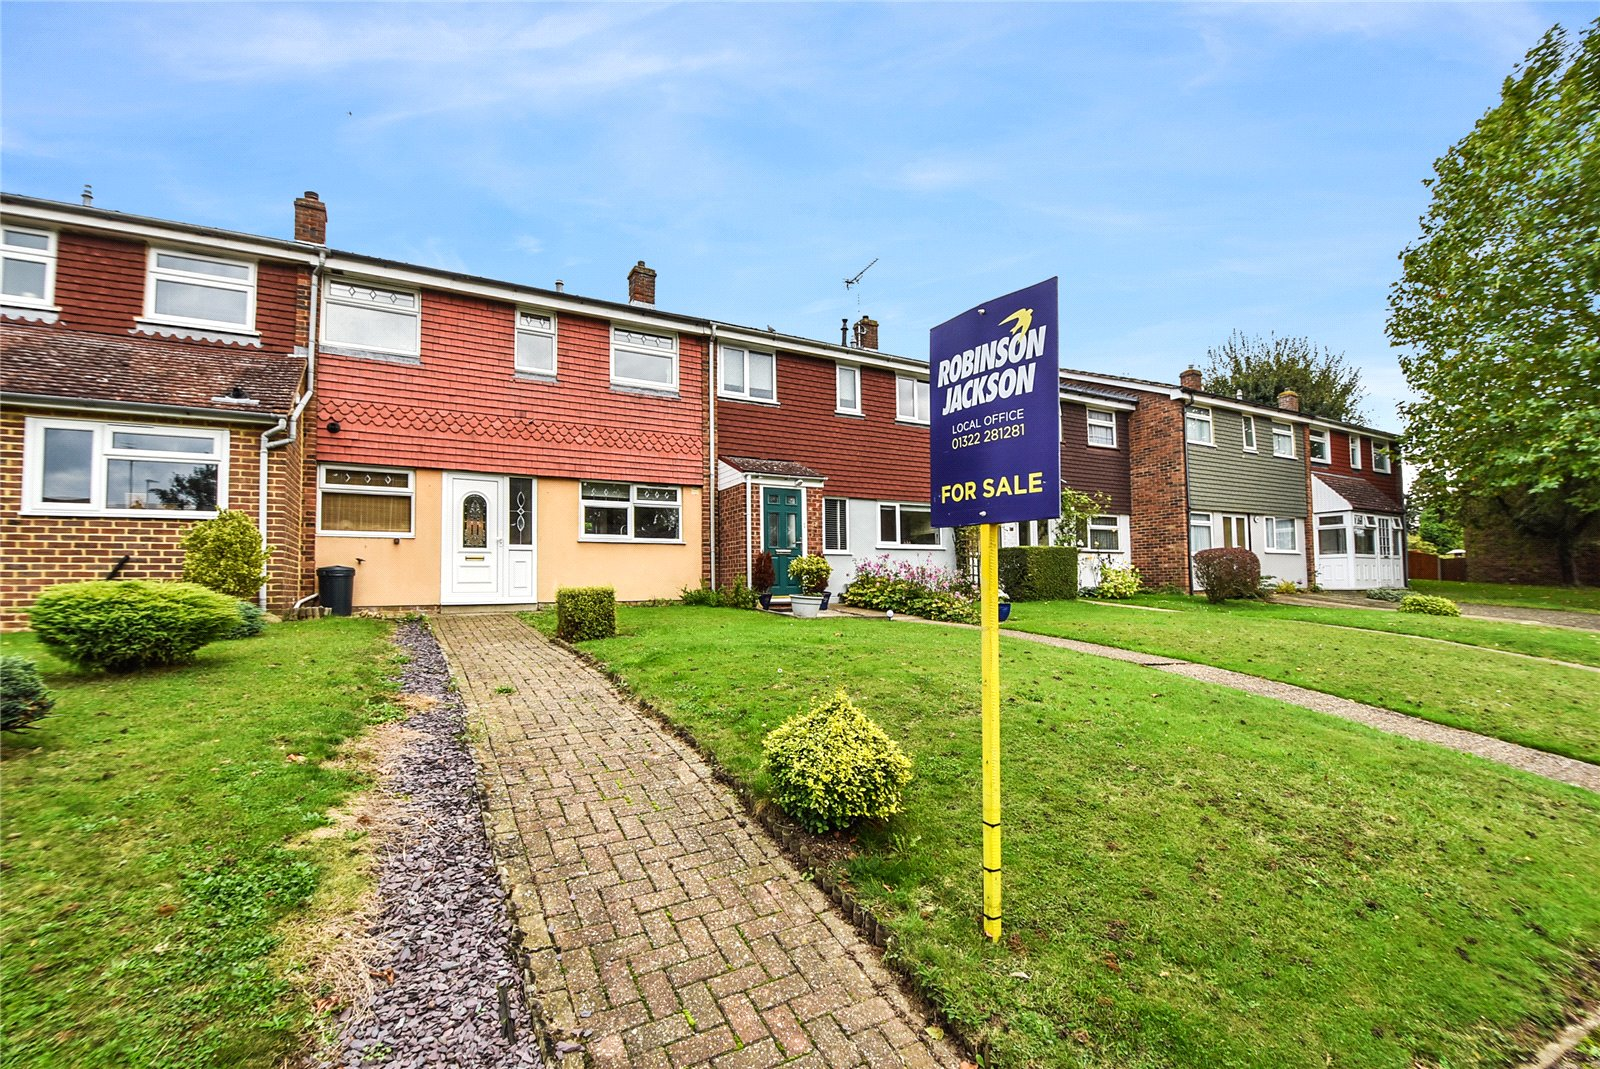 Paddock Close, South Darenth, Dartford, DA4